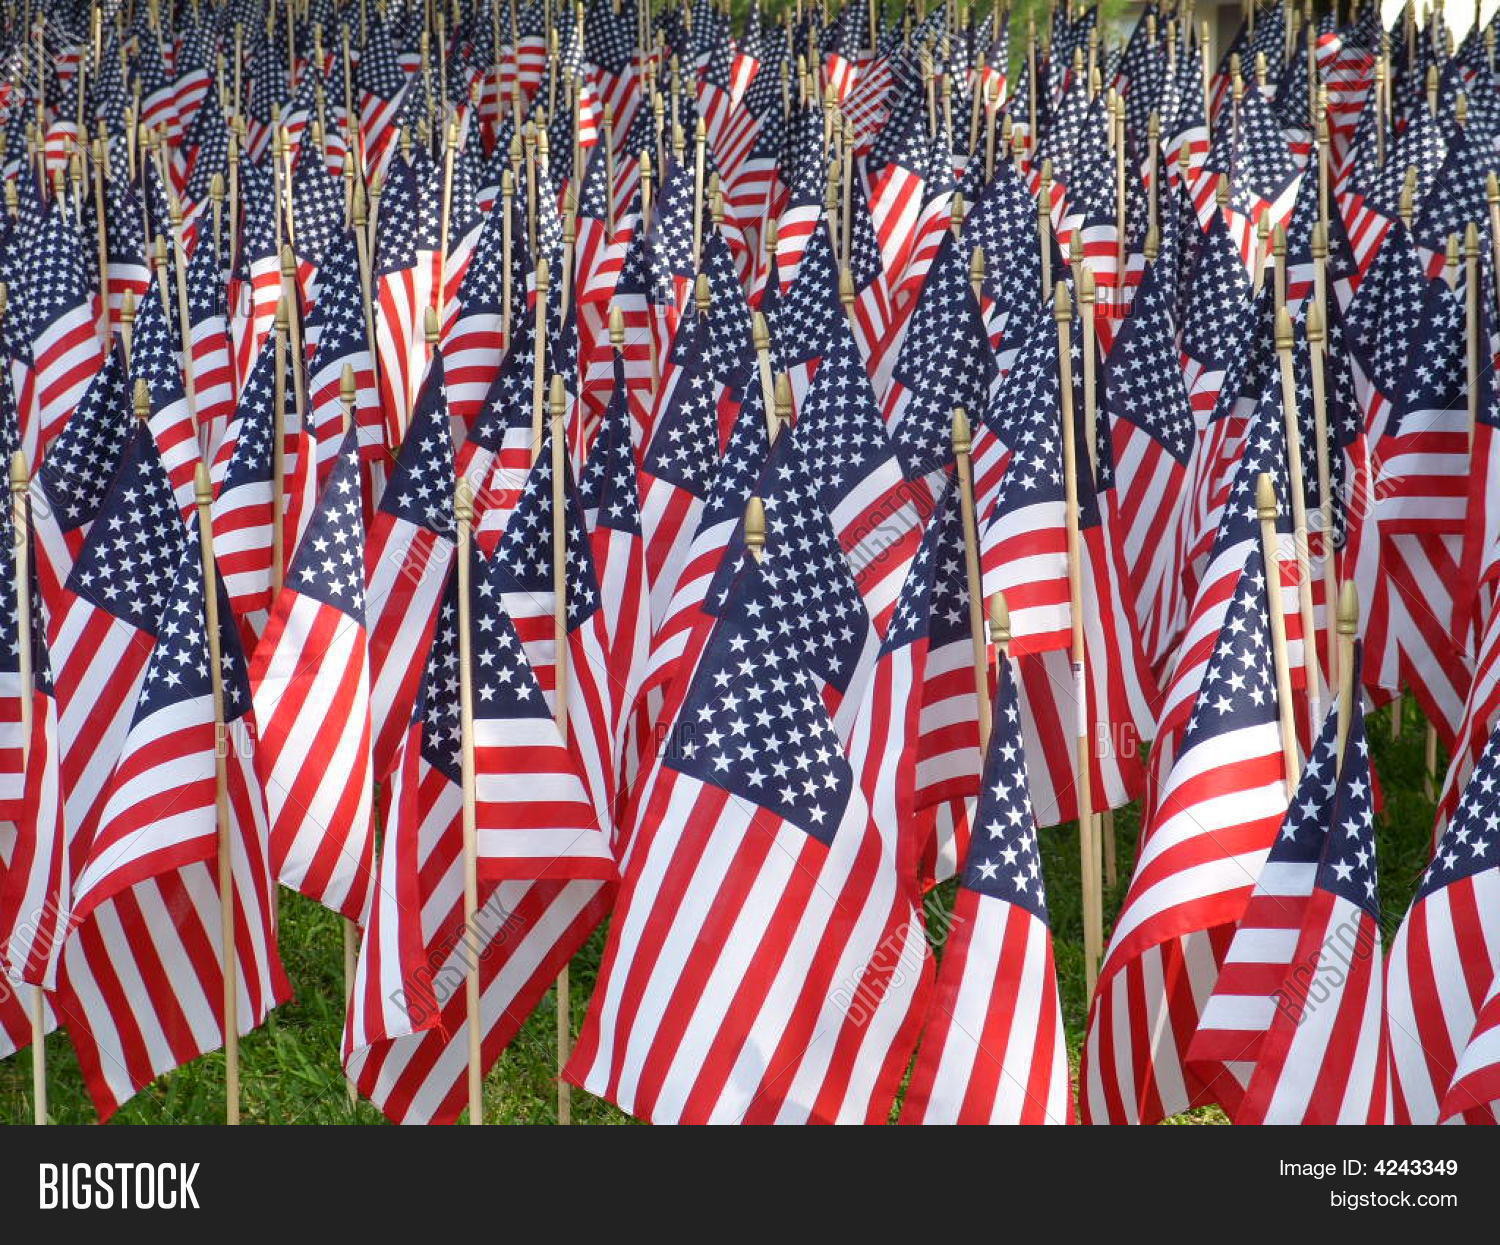 Field Flags Image & Photo (Free Trial) | Bigstock